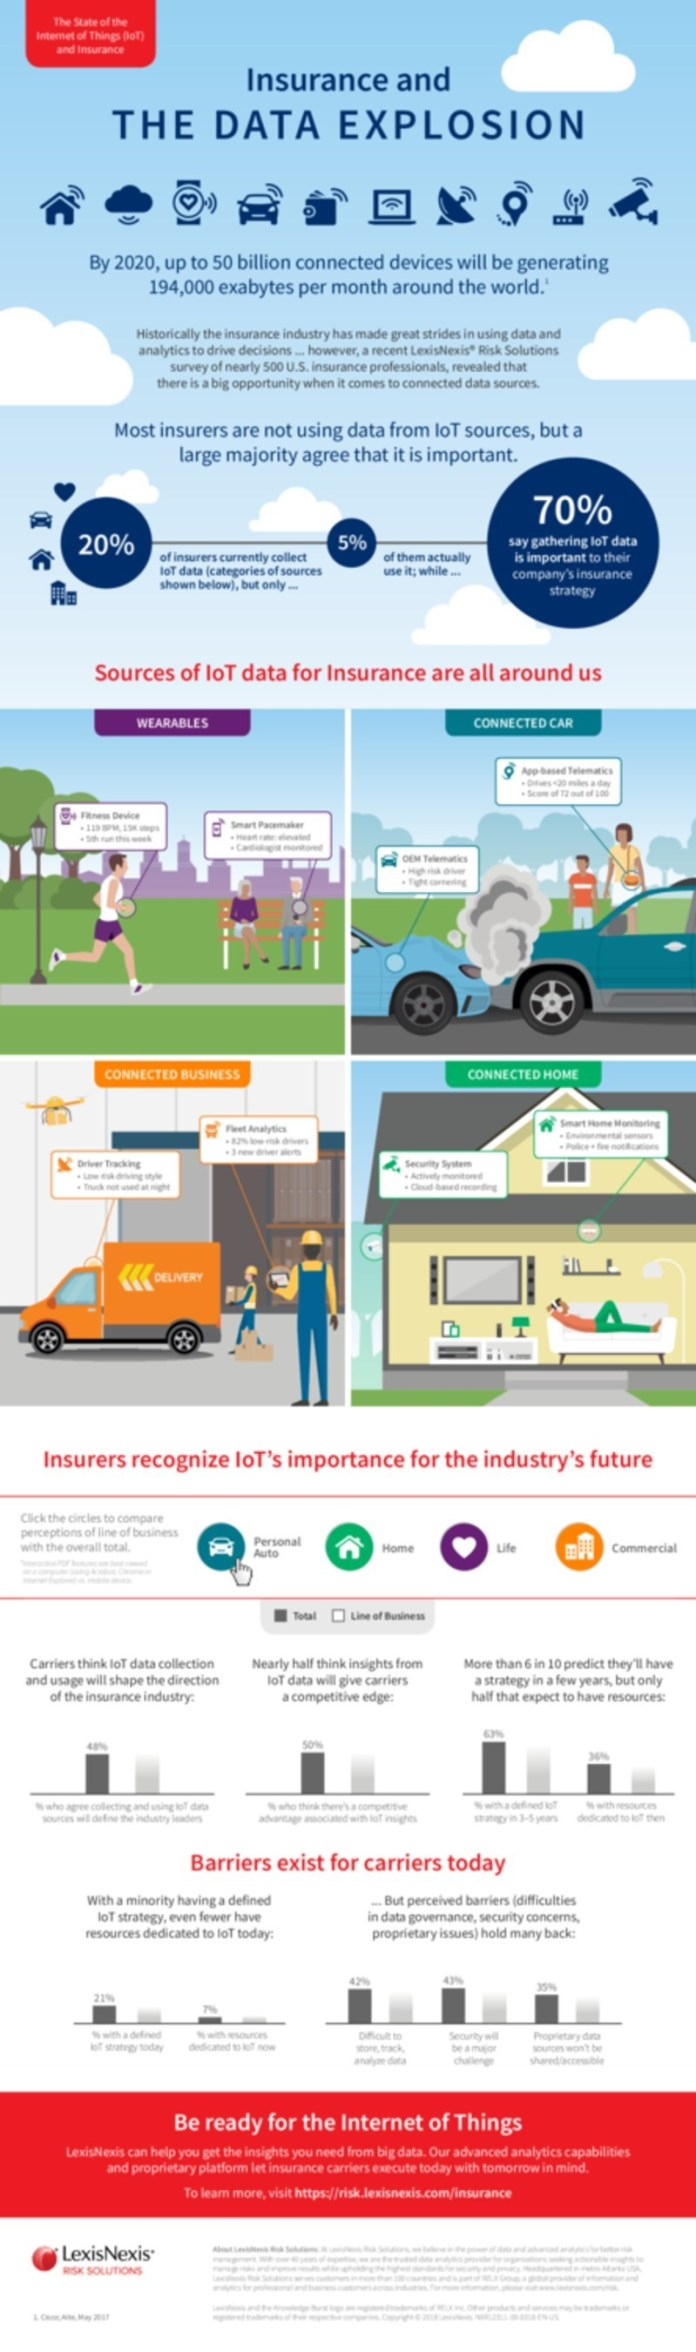 Insurance and the Data Explosion